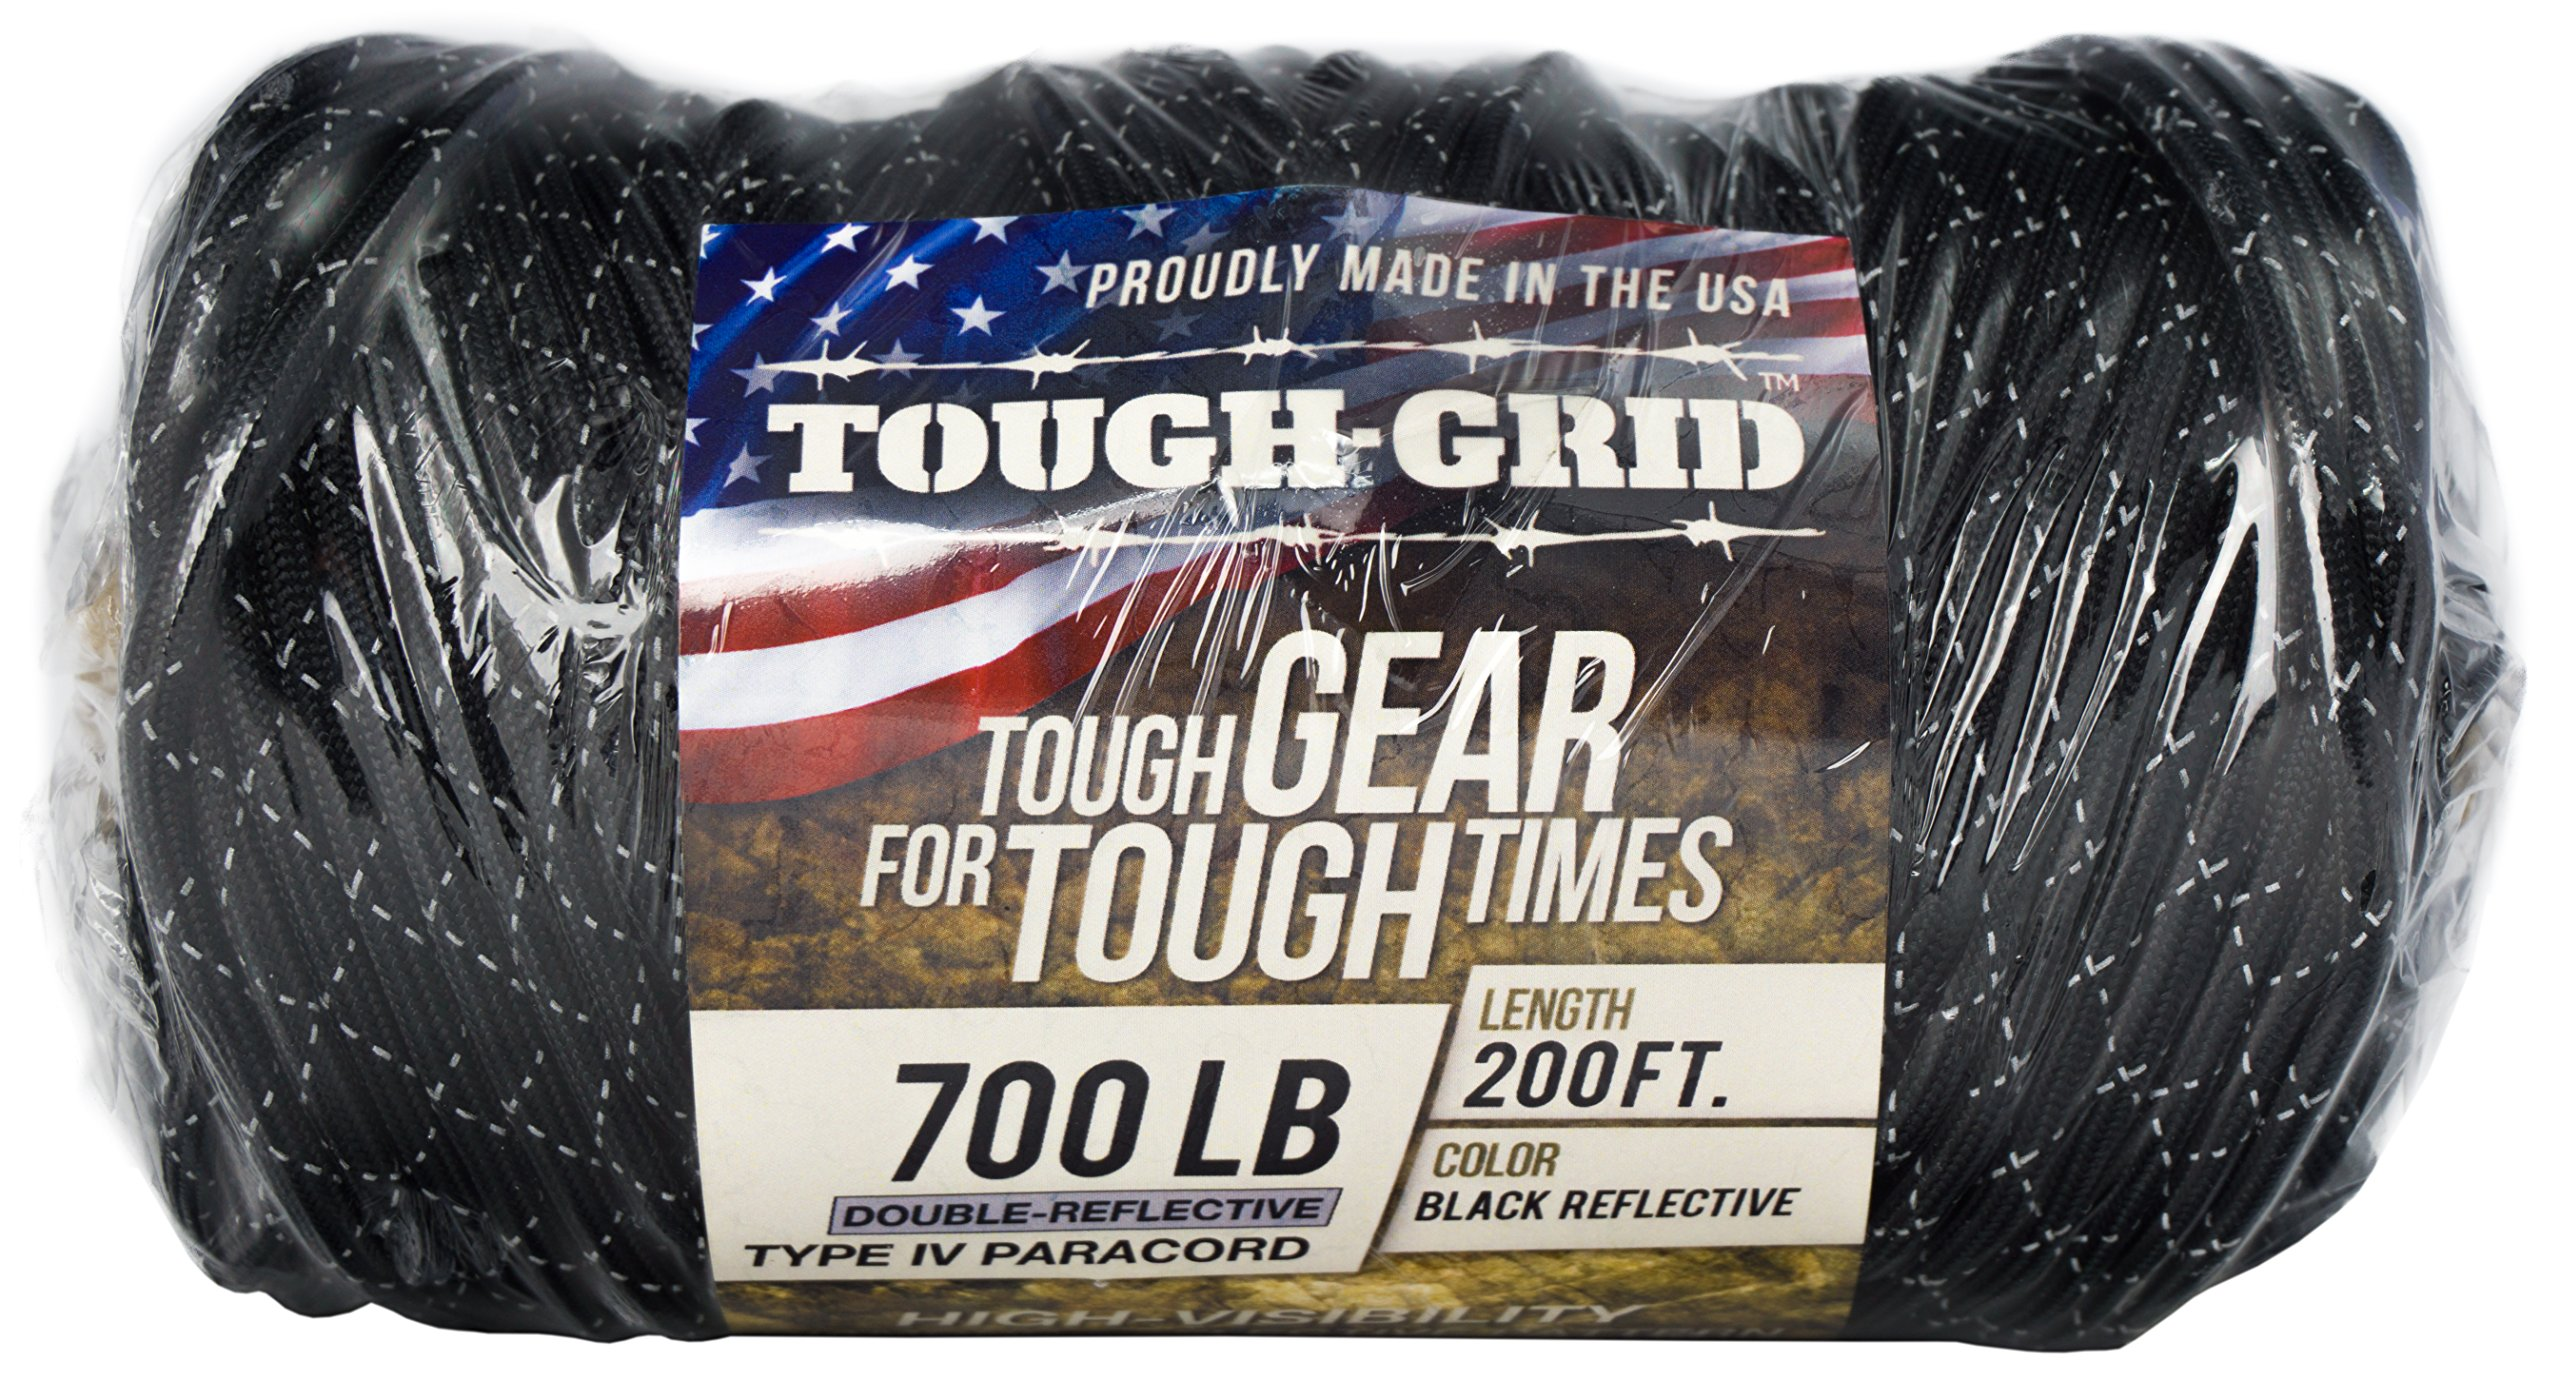 TOUGH-GRID New 700lb Double-Reflective Paracord/Parachute Cord - 2 Vibrant Retro-Reflective Strands for The Ultimate High-Visibility Cord - 100% Nylon - Made in USA. - 500Ft. Black Reflective by TOUGH-GRID (Image #5)